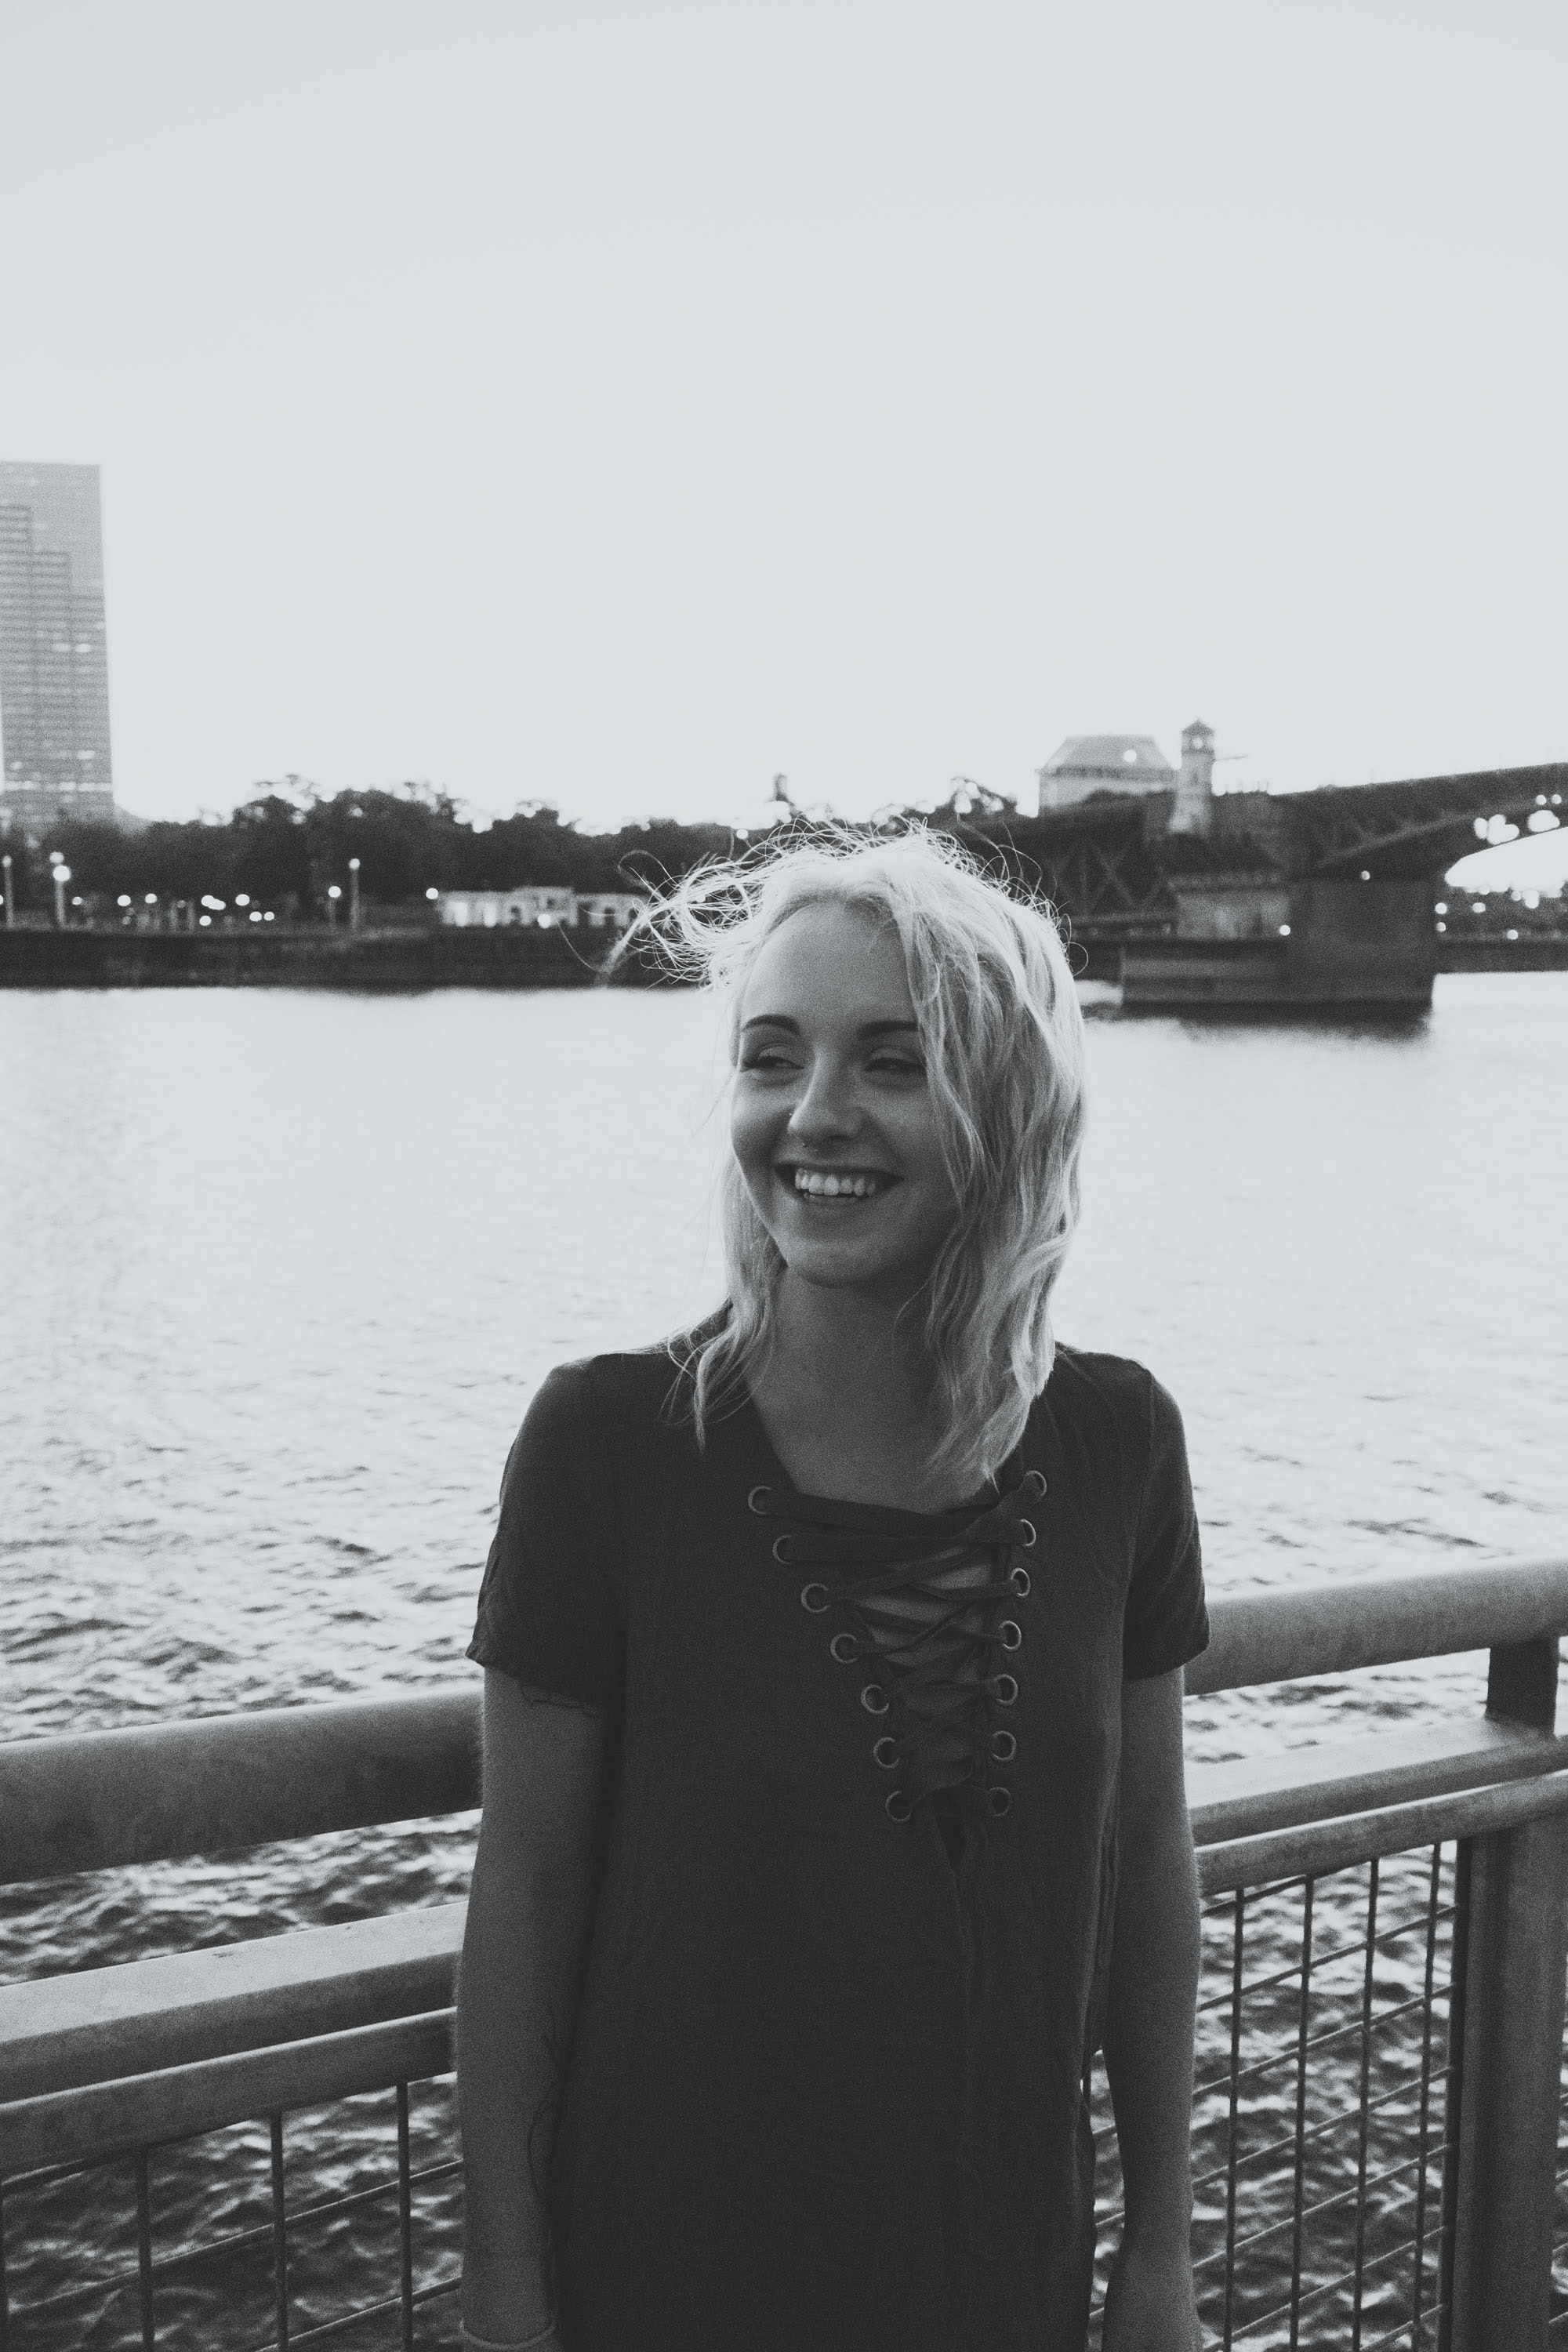 grayscale photo of smiling woman standing near fence above body of water